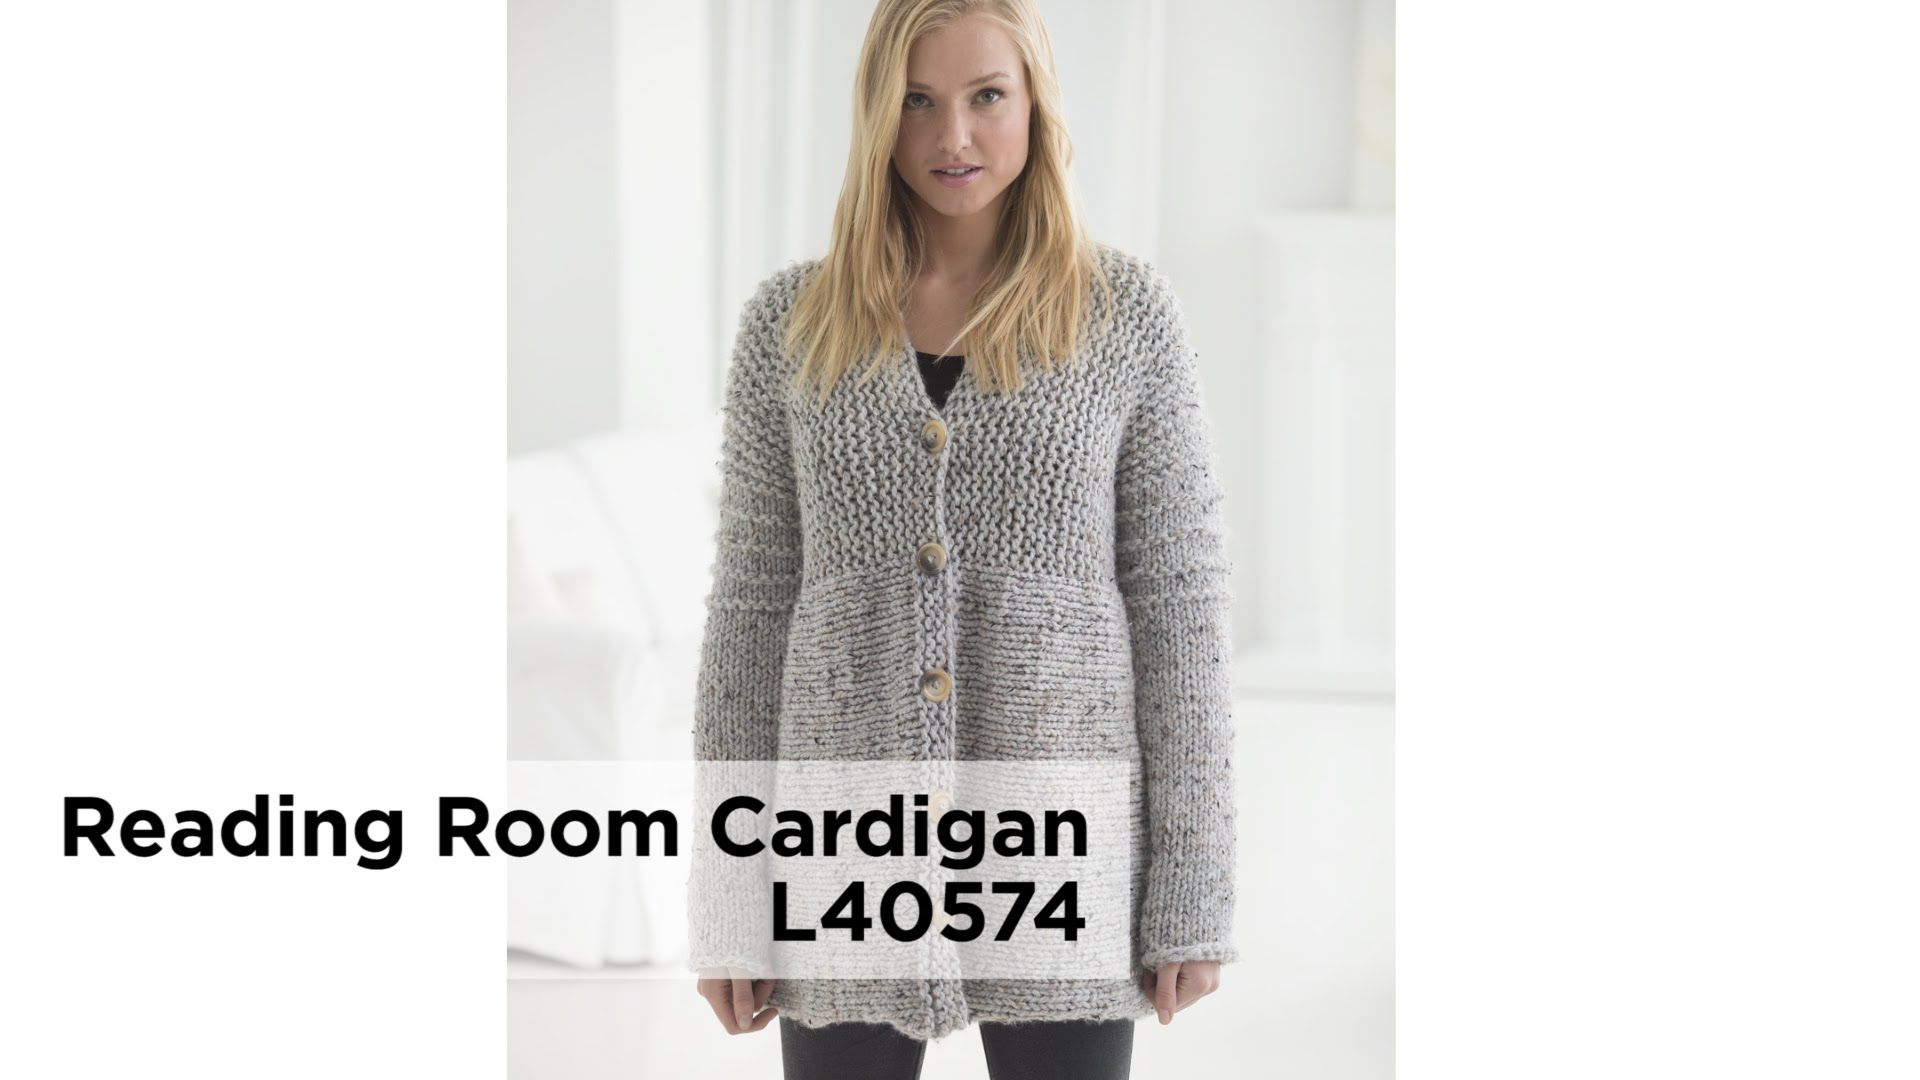 The Reading Room Cardigan - Great Pattern for Your First Sweater ...